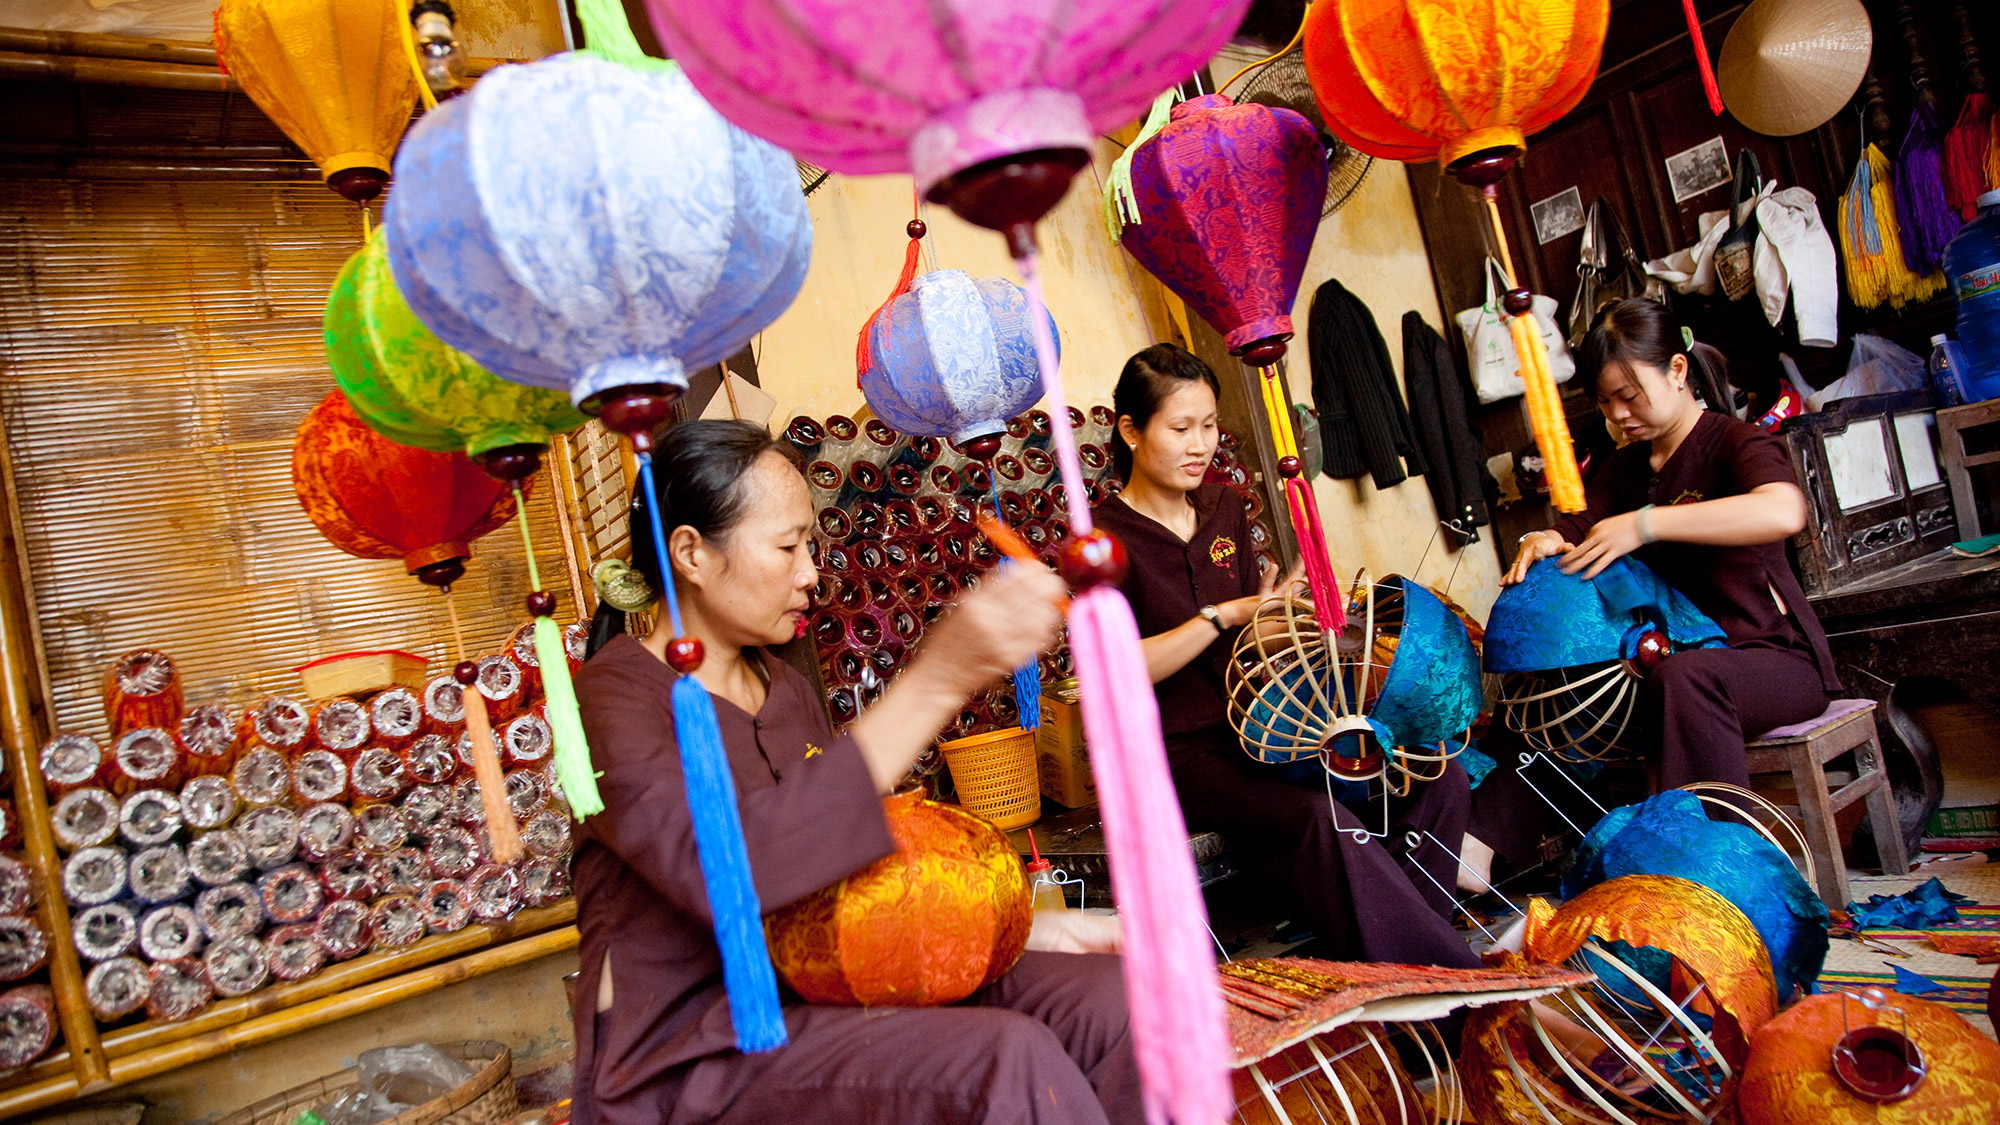 Latern making in the central of ancient town Hoi An